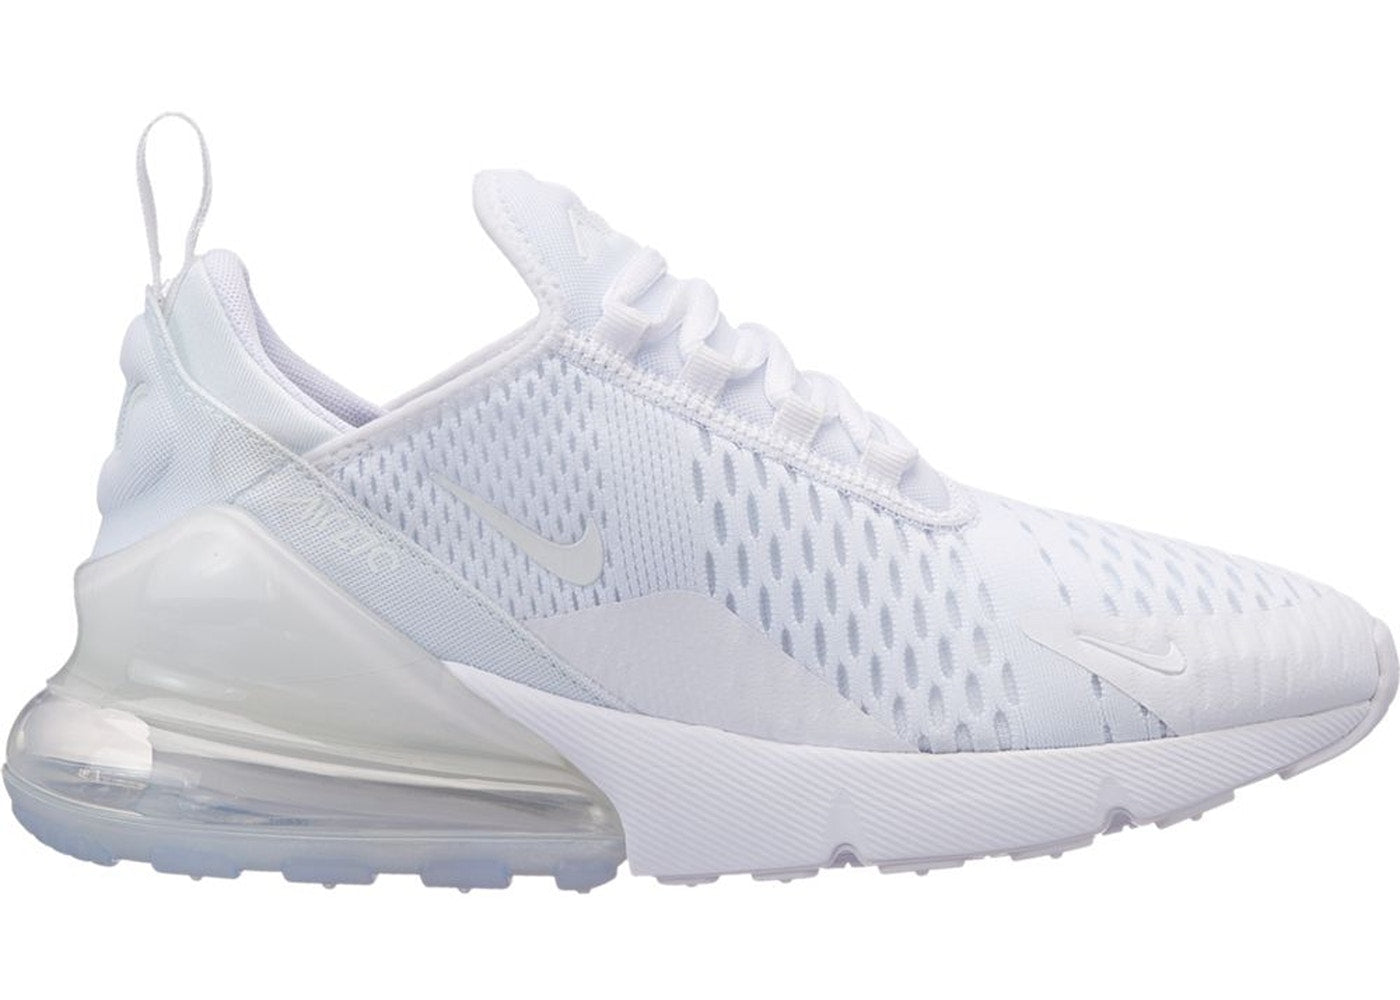 separation shoes 1cf2b 17eac nike 270 air max all white